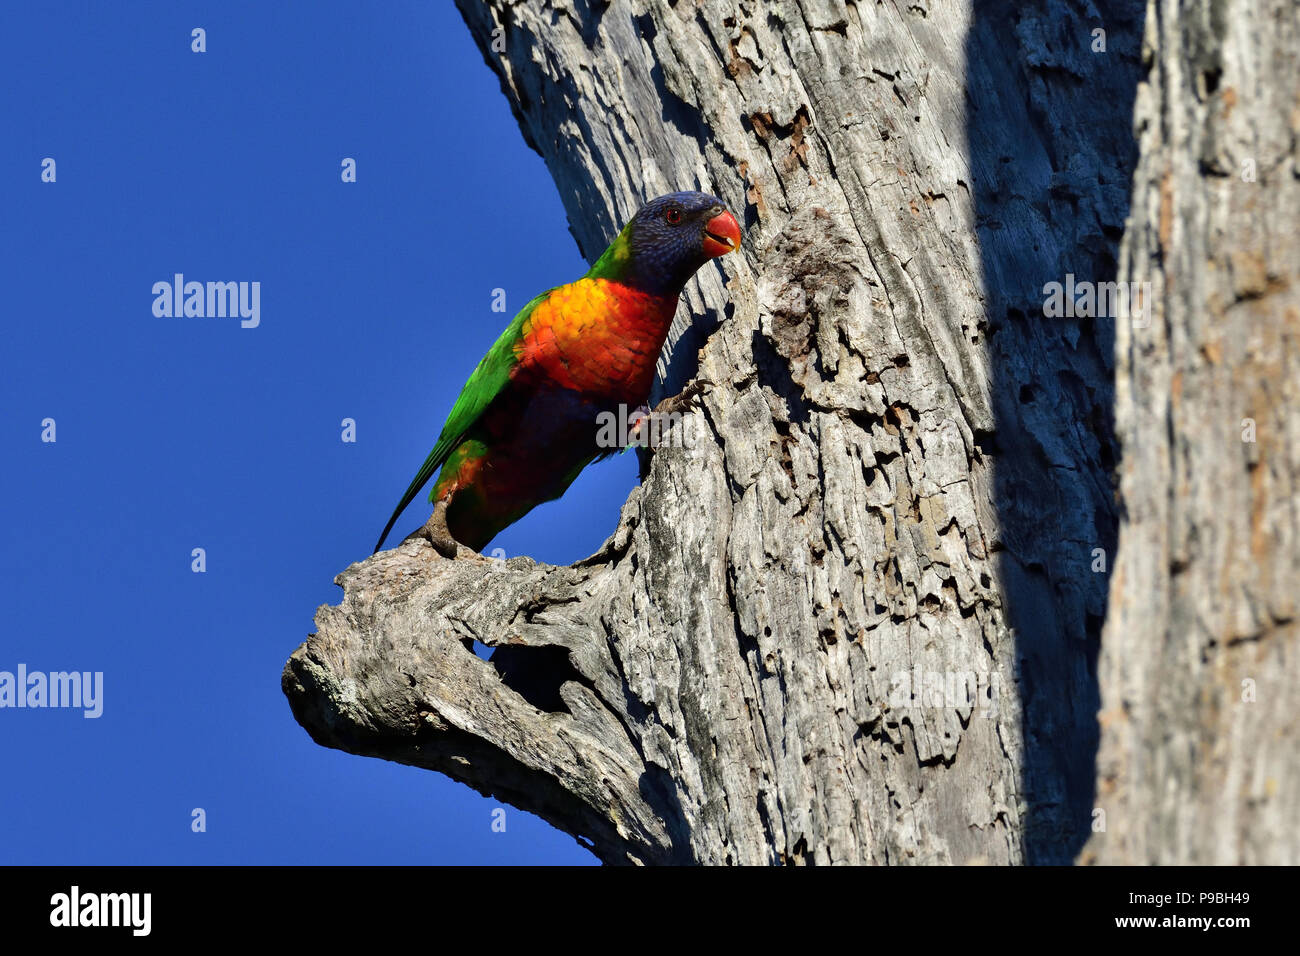 An Australian, Queensland Rainbow Lorikeet ( Trichoglossus haematodus ) perched on the side of a dead tree trunk with its legs spread - Stock Image